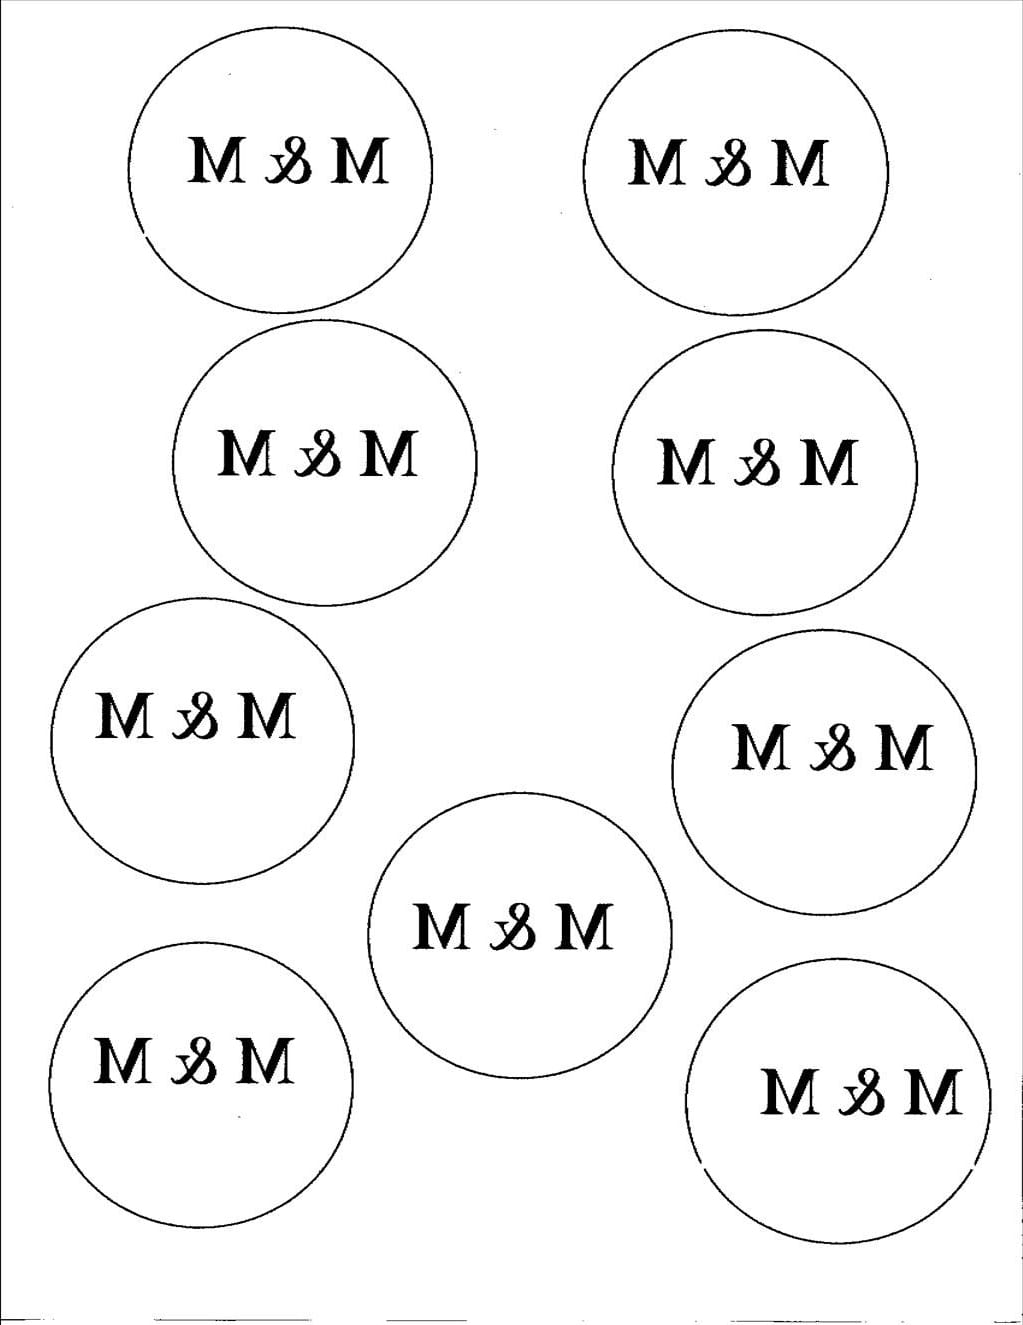 M&m Coloring Page Hk42 Monumental M Coloring Pages Cookie Monster